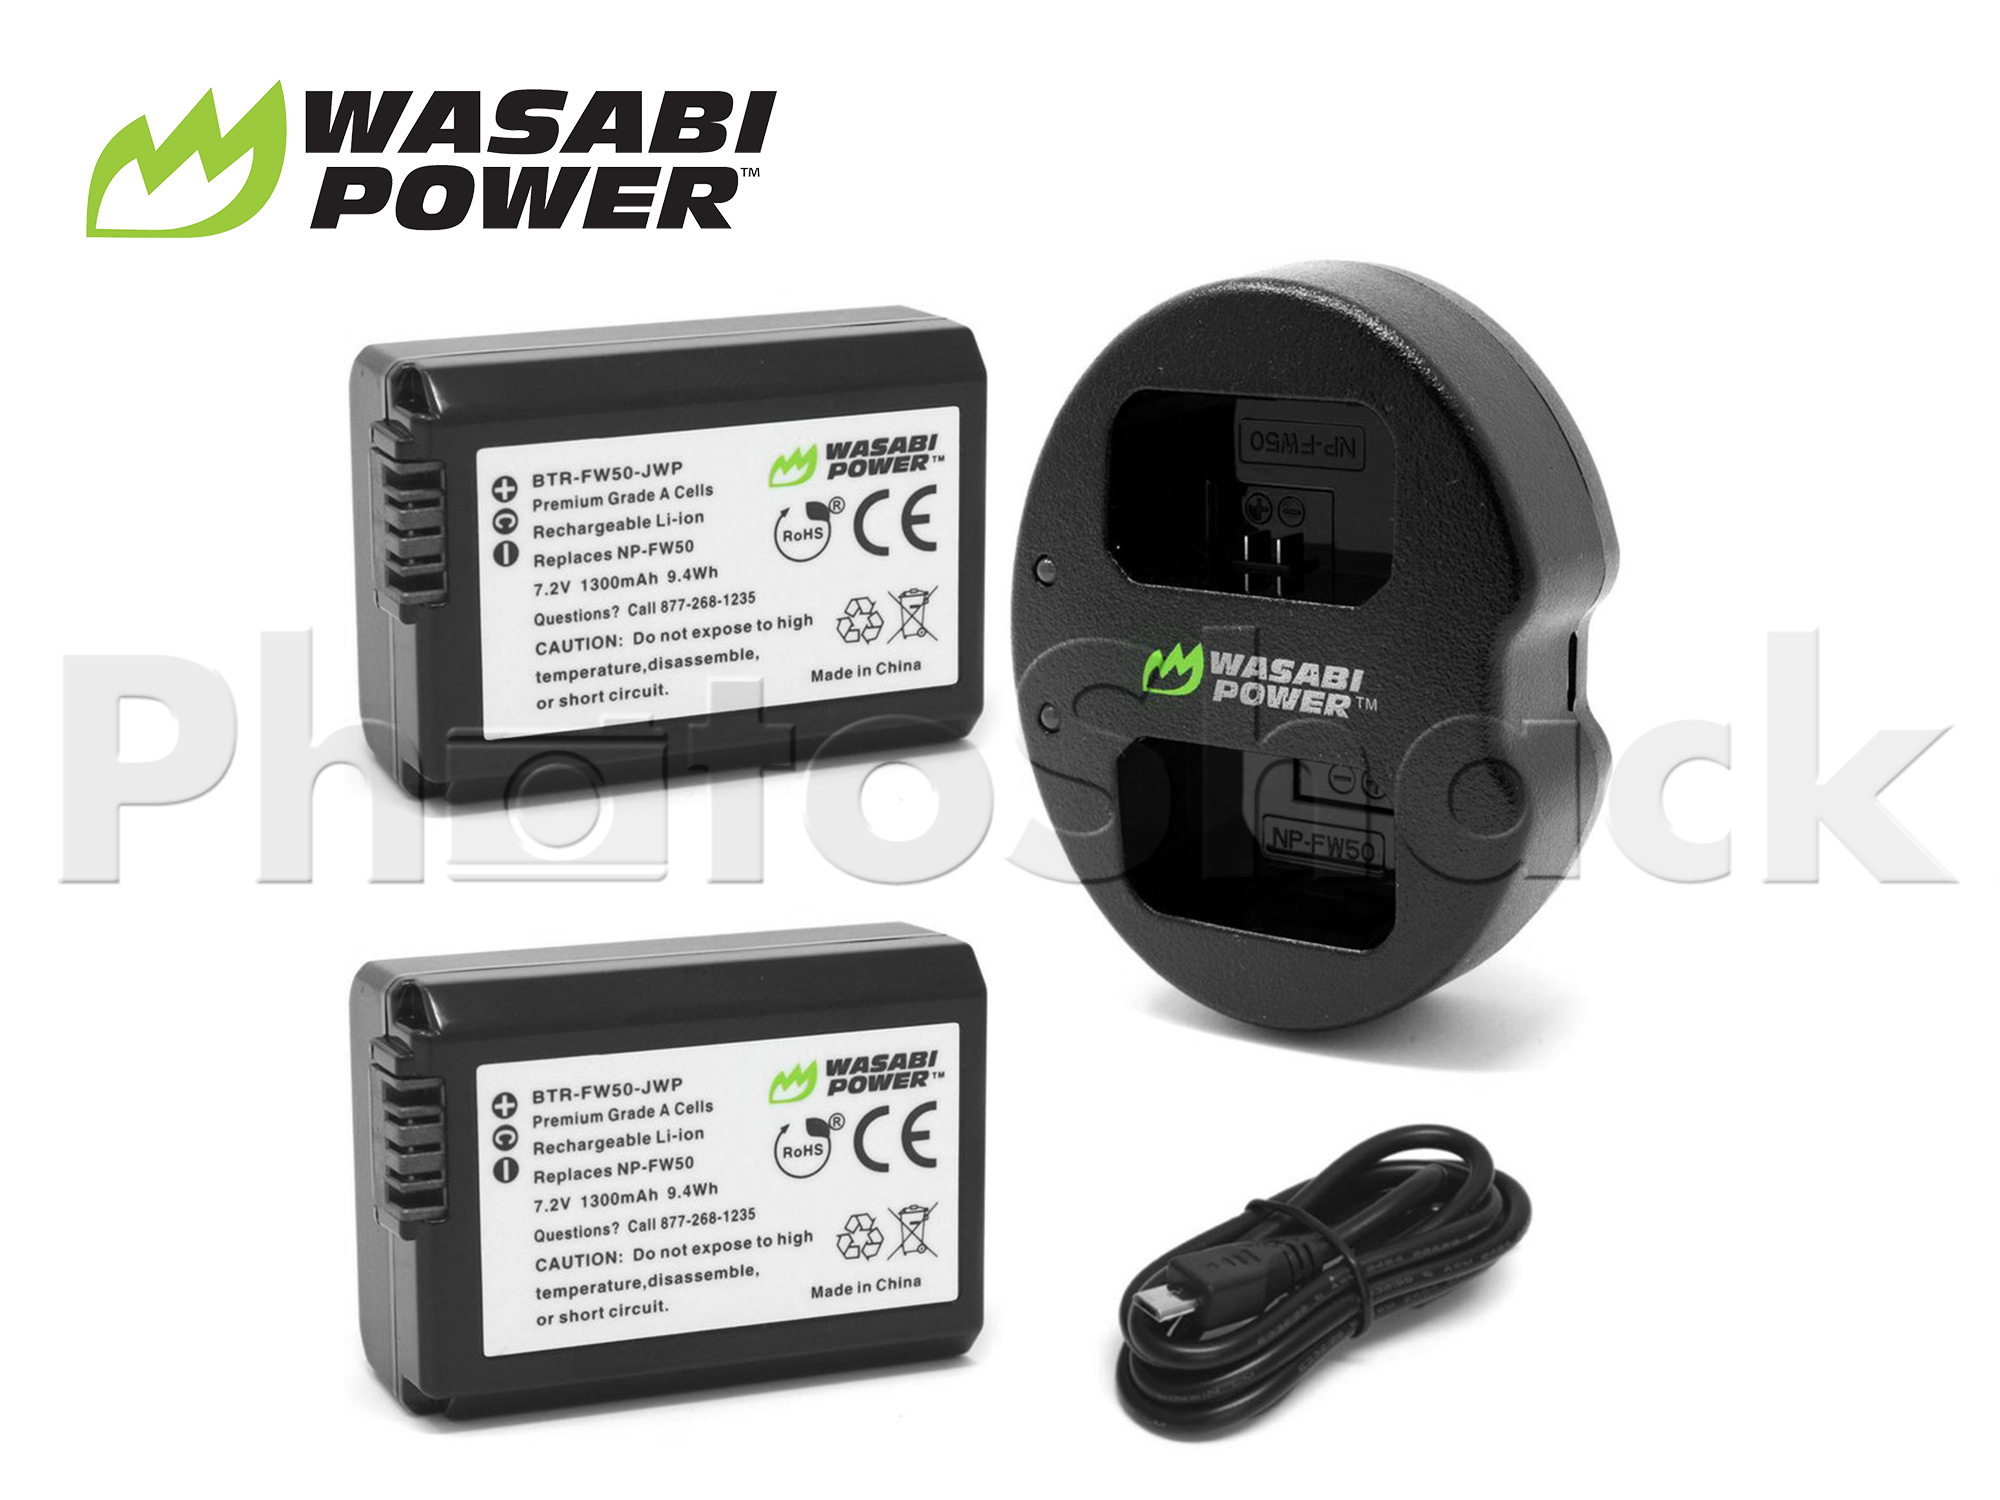 NPFW50 Battery for Sony (2 Pack + Dual Charger) - Wasabi Power